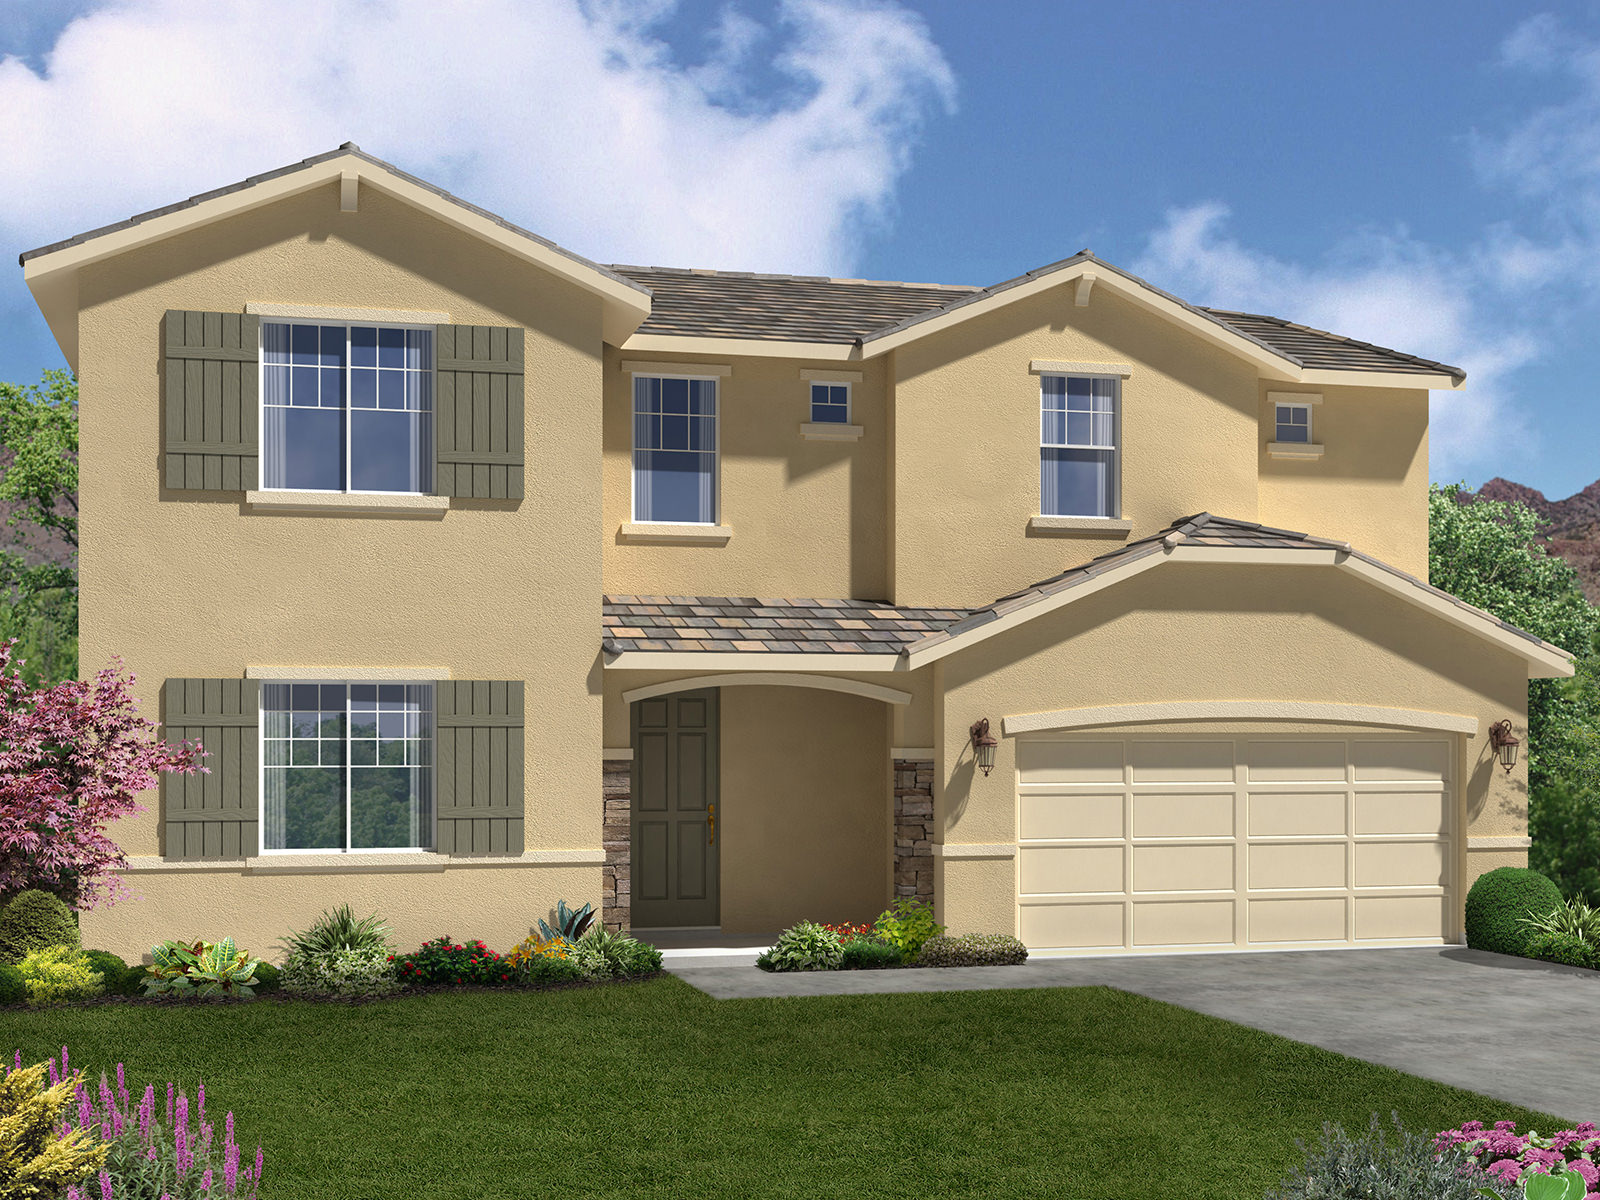 The Valencia Model 4br 4ba Homes For Sale In Bakersfield